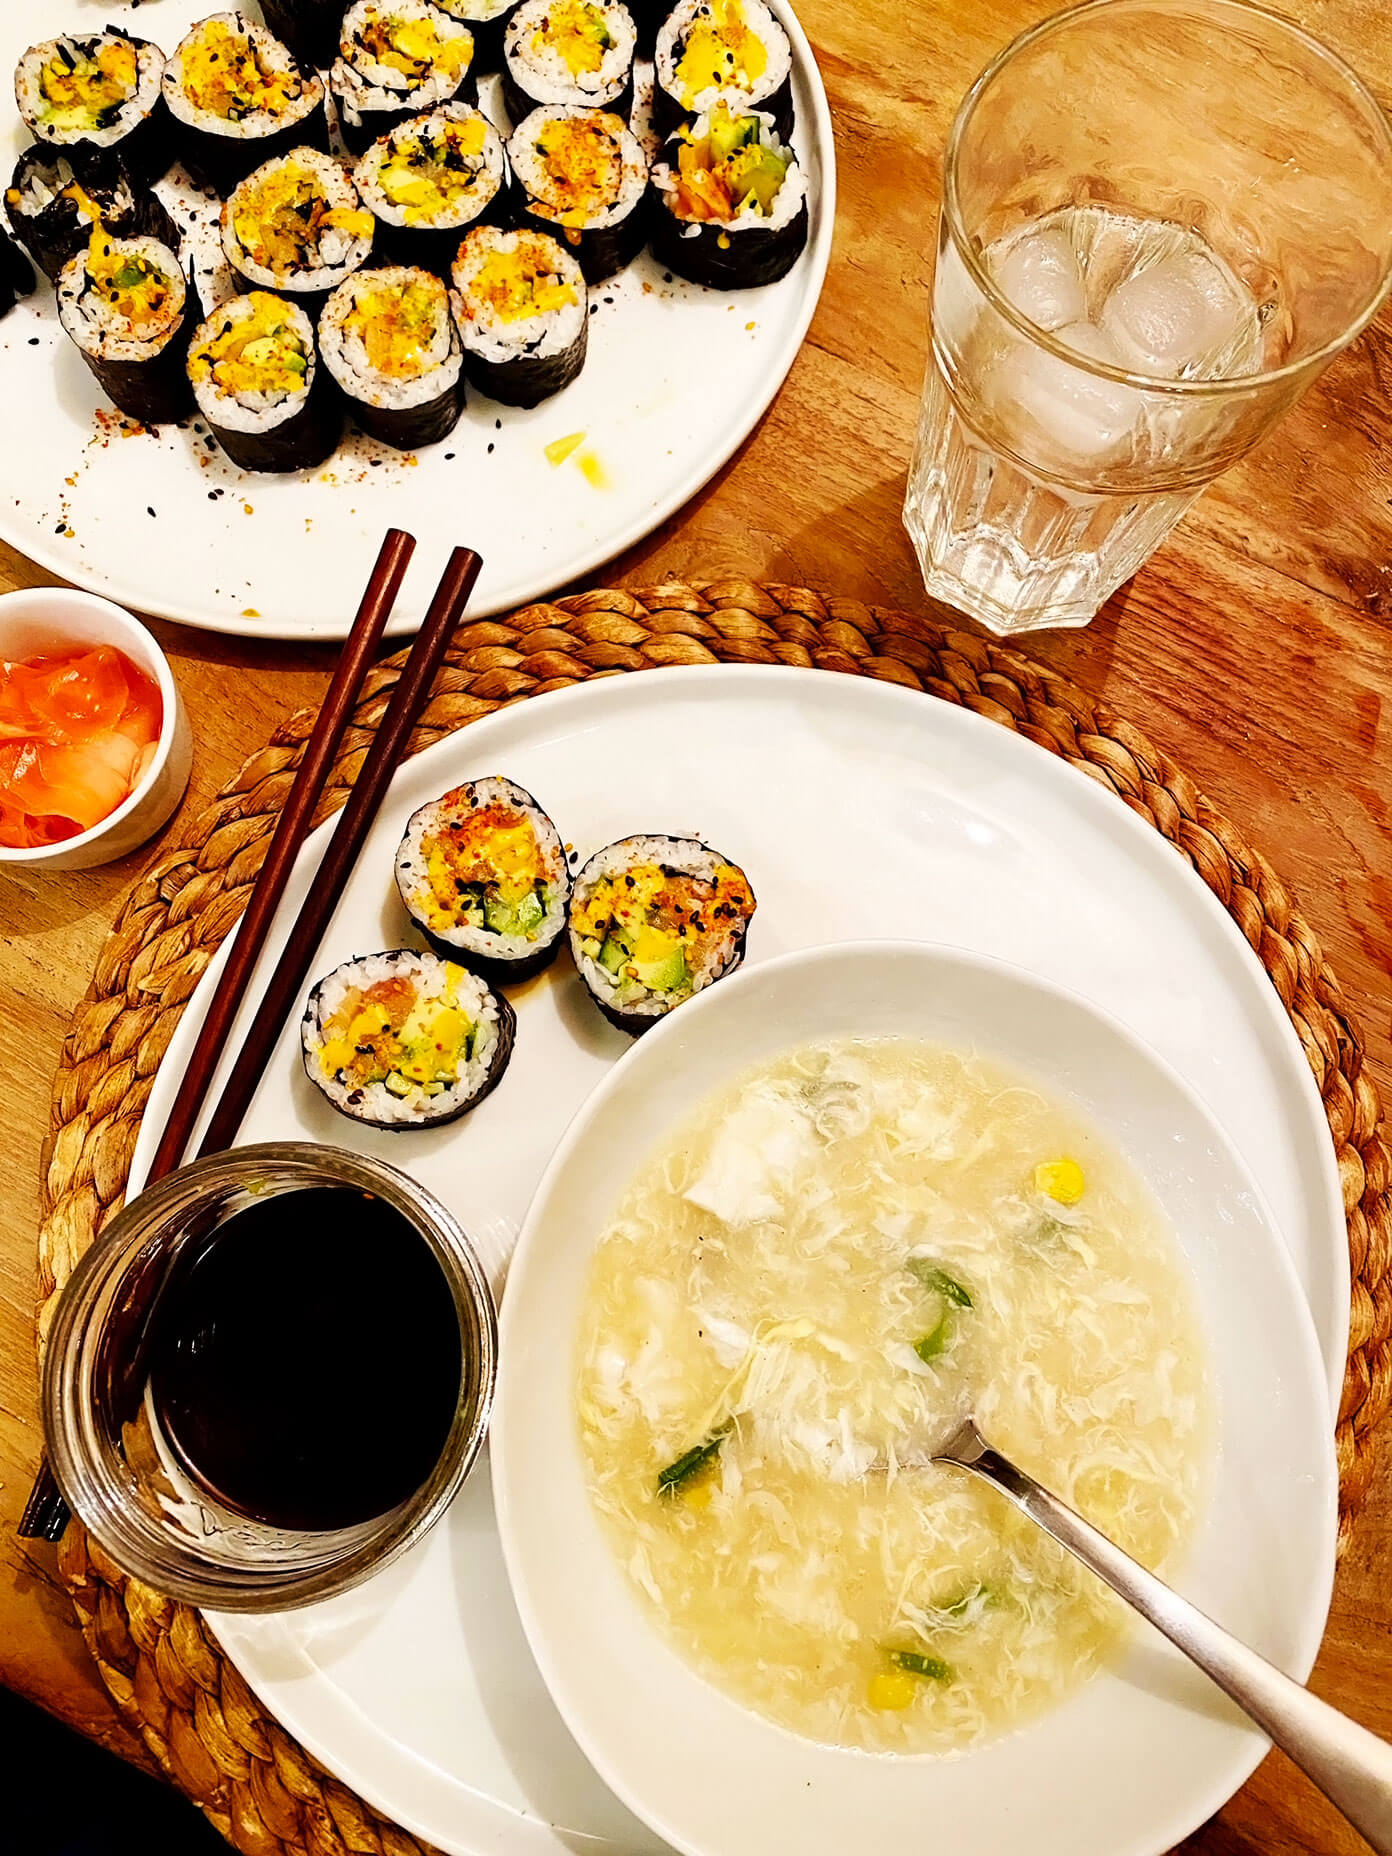 Homemade sushi and egg drop soup